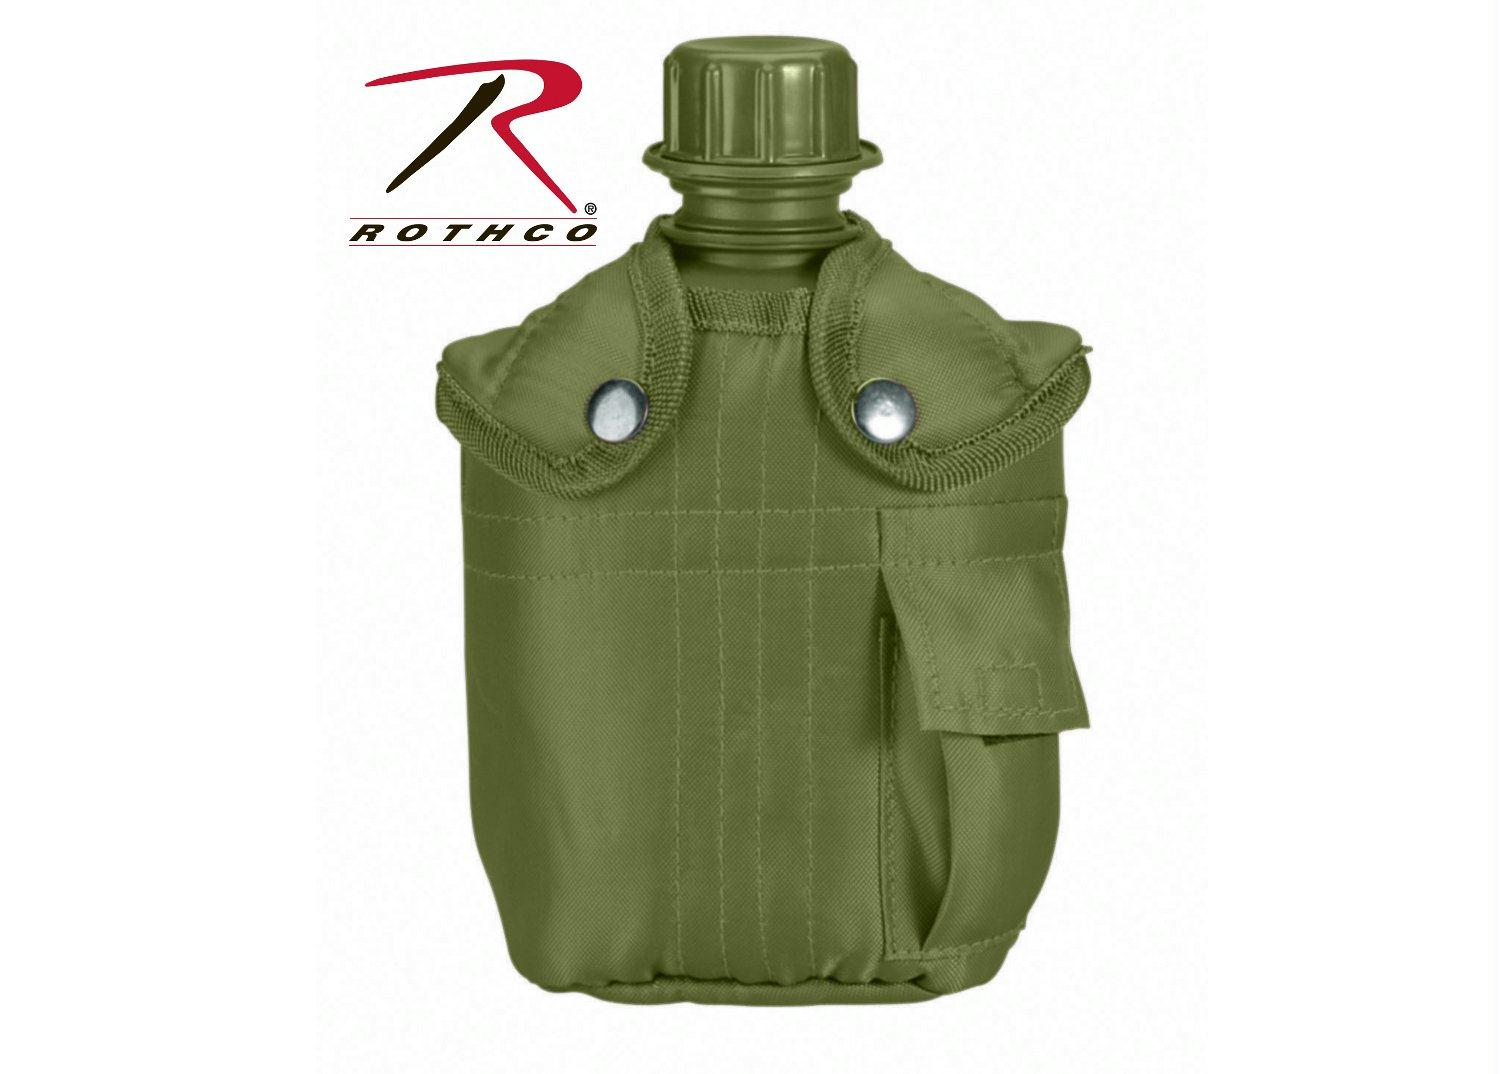 Rothco G.I. Type Canteen & Cover - Olive Drab